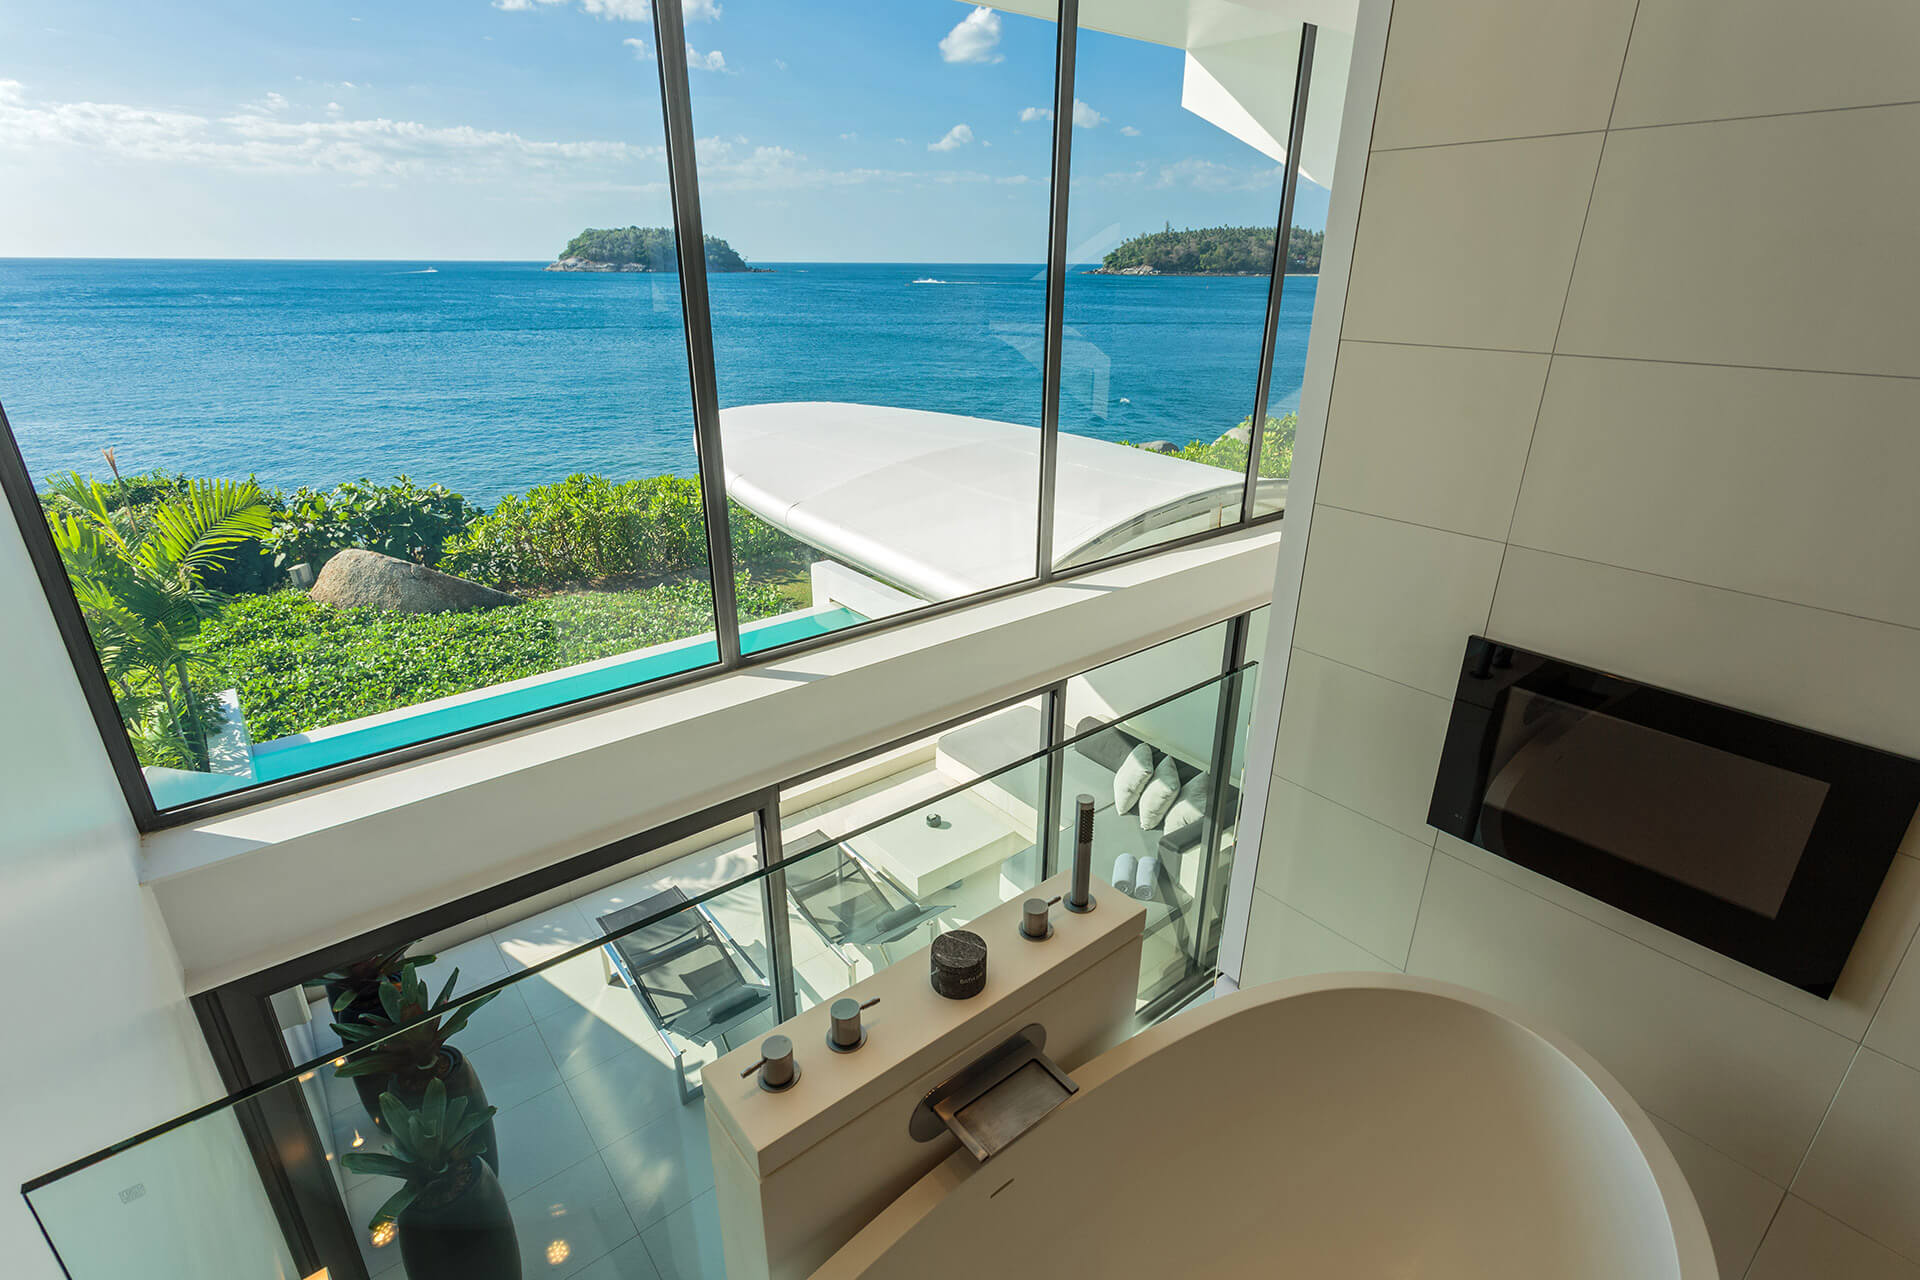 One-bedroom 'Ocean Loft' Sky Villas - View from bathroom